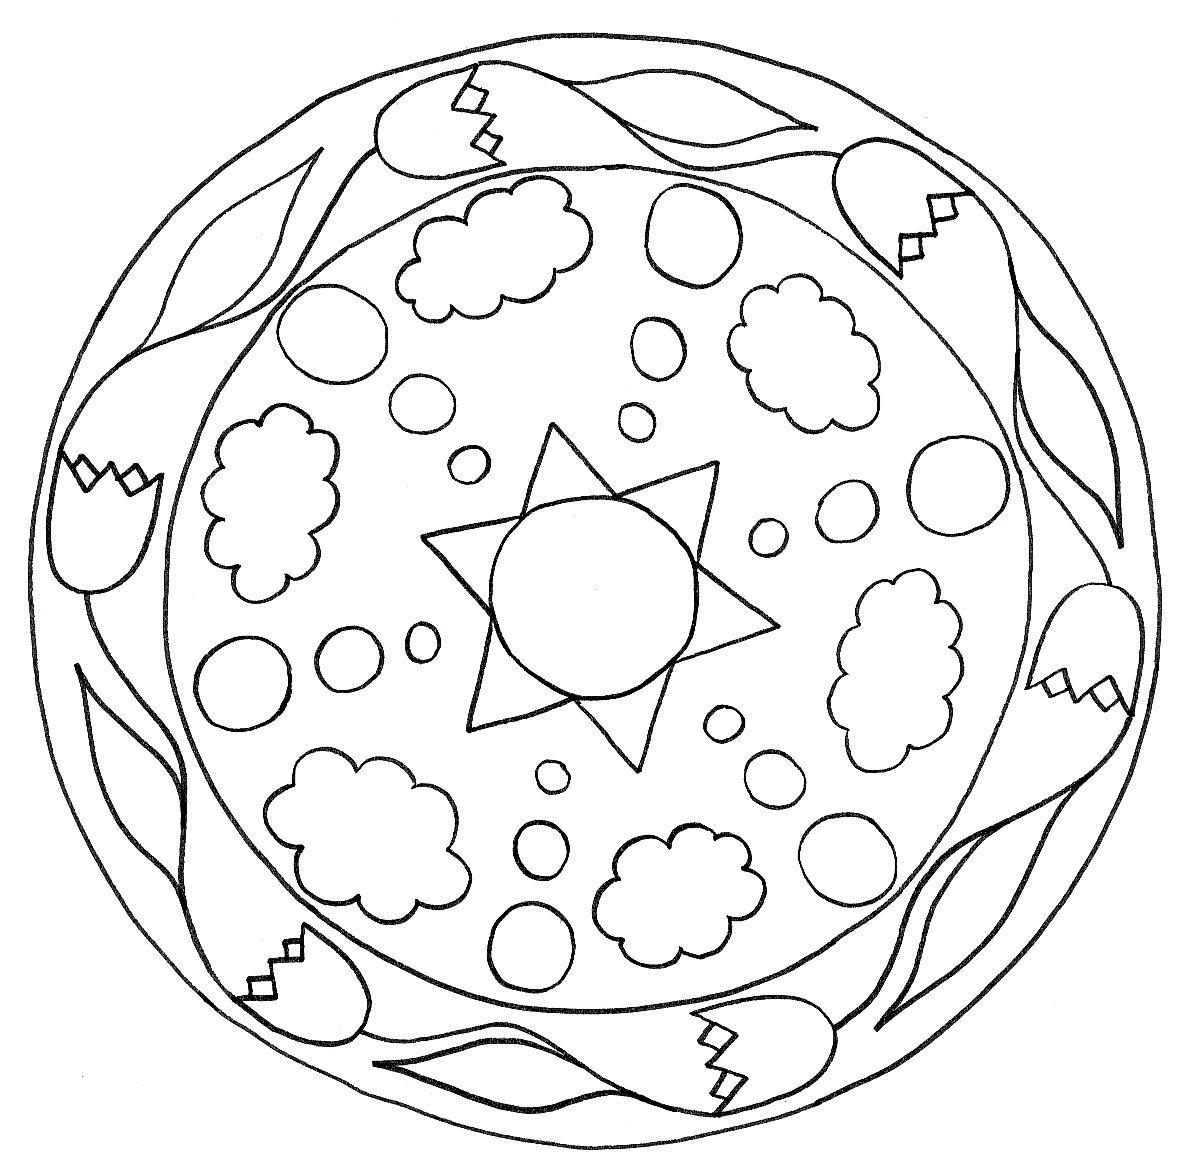 Simple mandalas for kids coloring